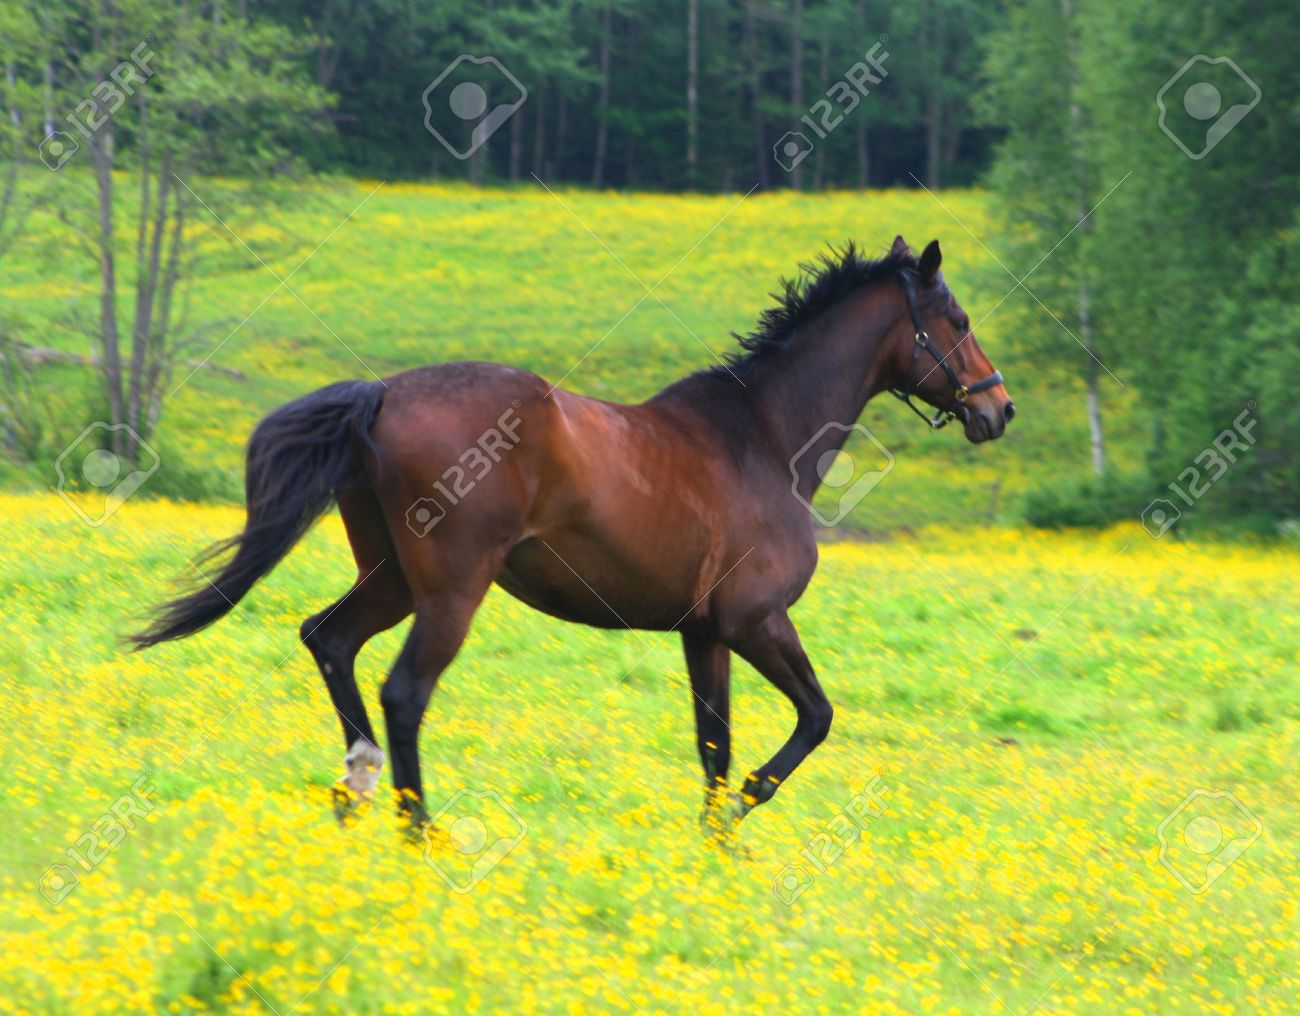 Beautiful Brown Horse Running Across A Yellow Field Stock Photo Picture And Royalty Free Image Image 7405161